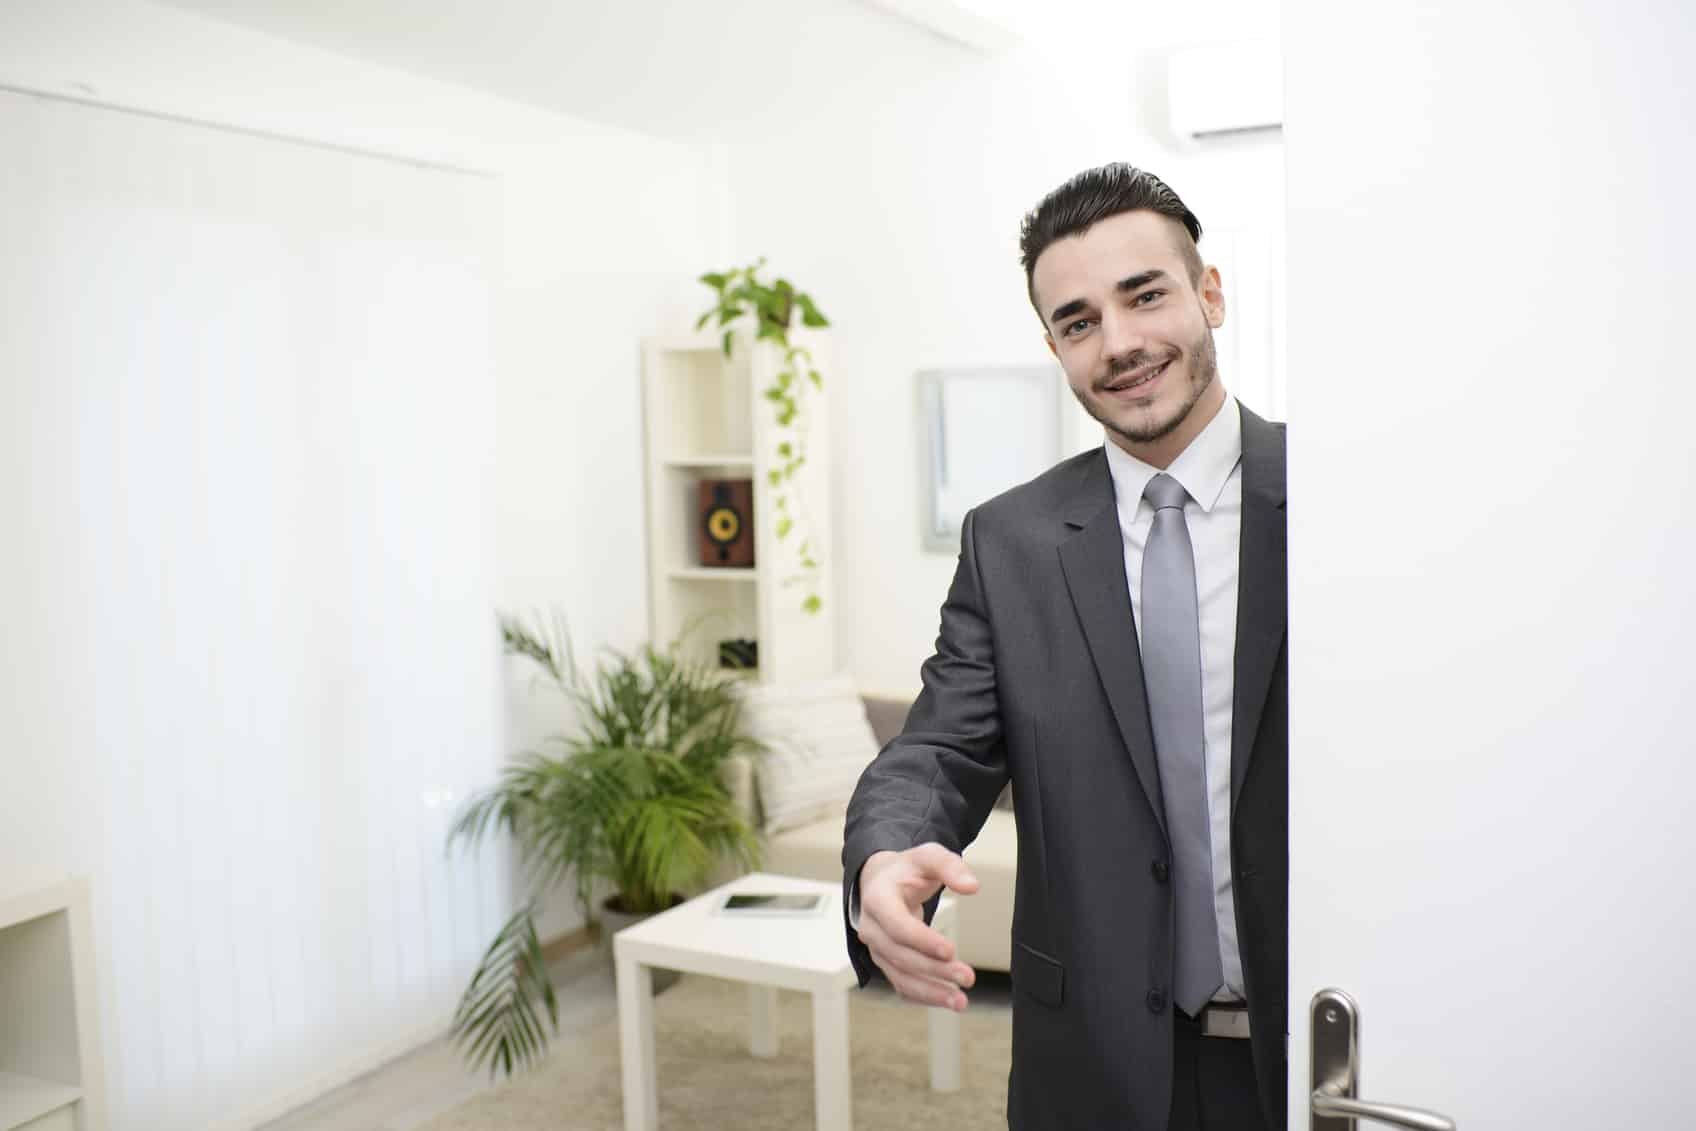 young businessman at doorway giving hand to customer